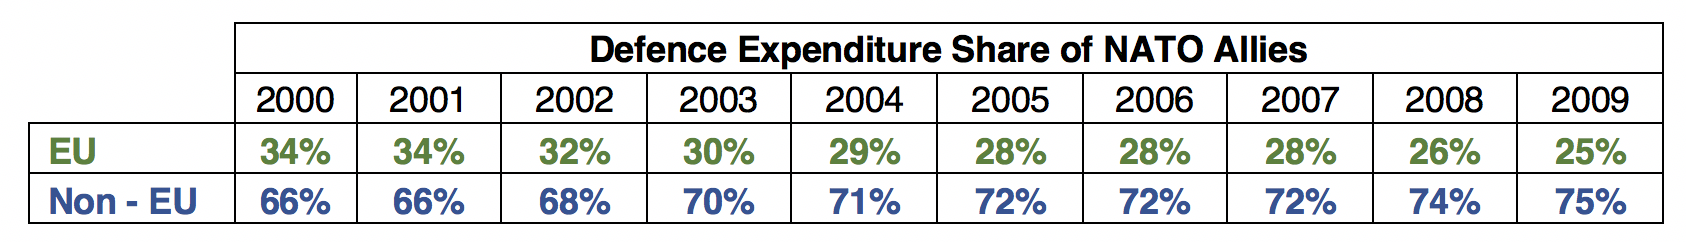 Total Defence Expenditure Share of NATO Allies (2000 - 2009), Source: (SIPRI Military Expenditure Database)